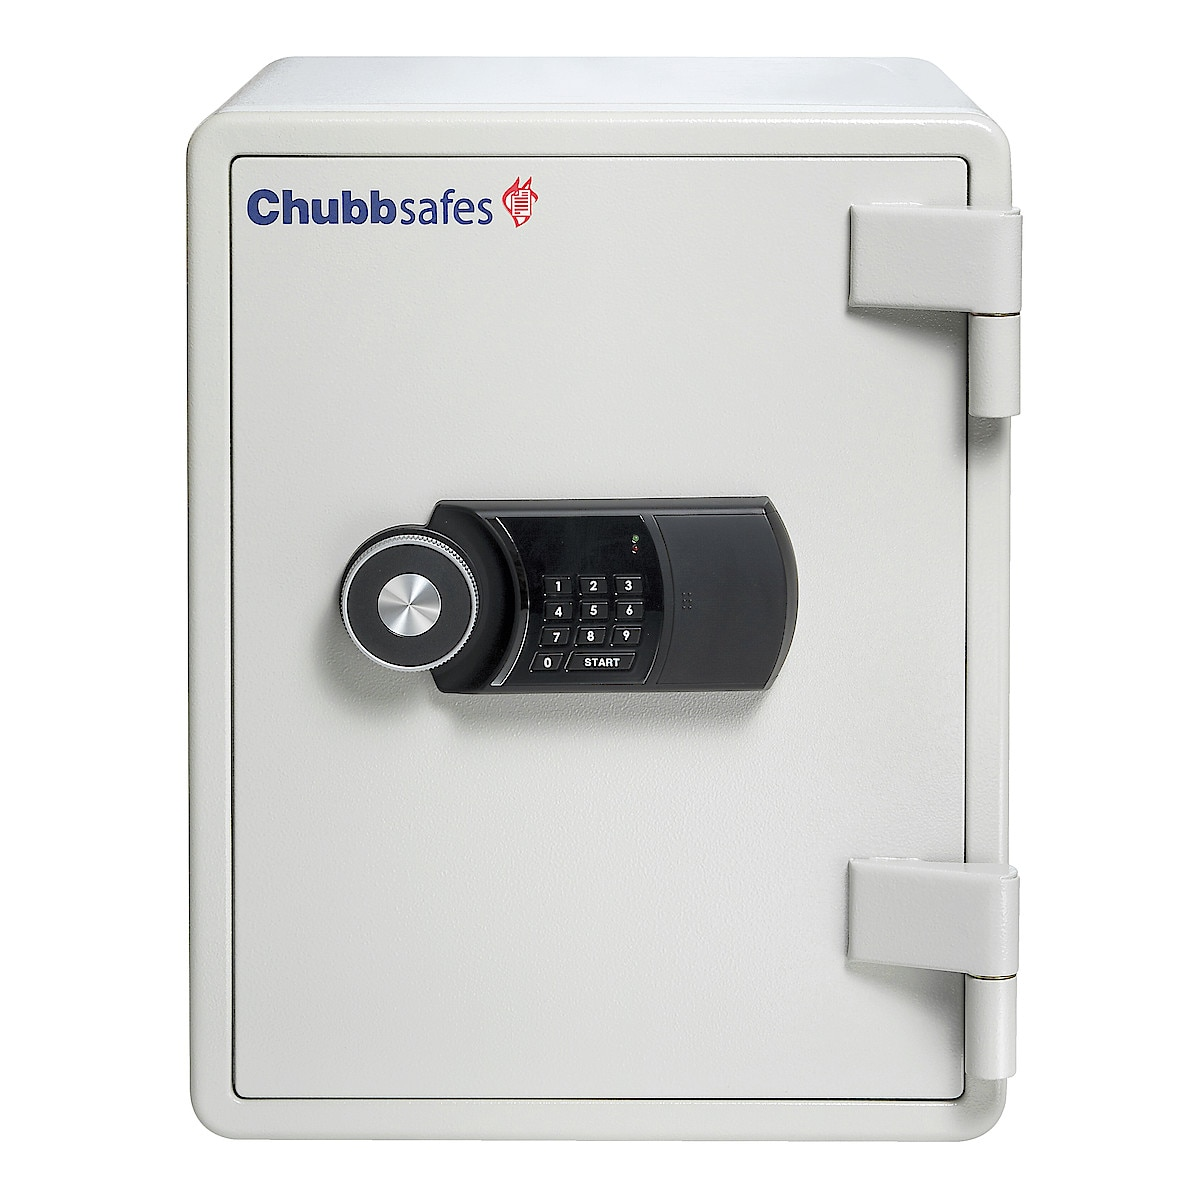 Chubbsafes Executive 40 dokumentskap